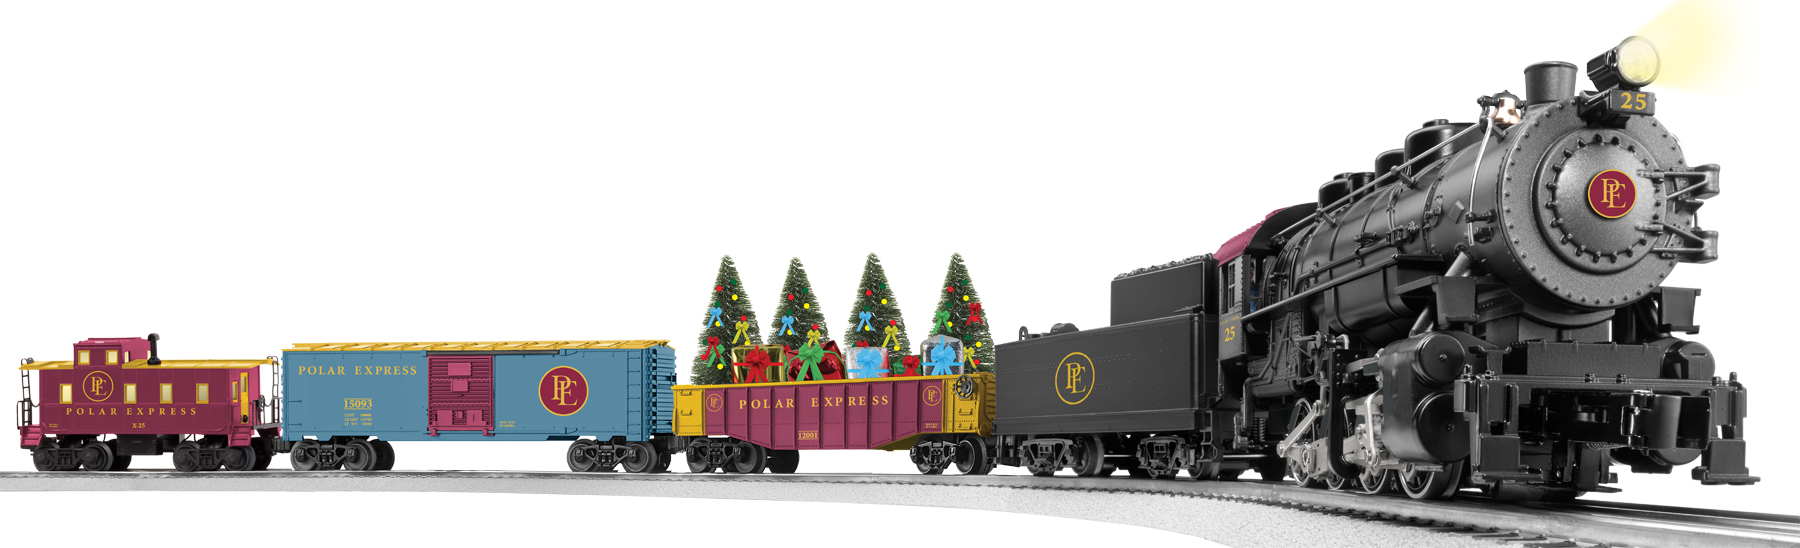 The Polar Express freight set will add variety and excitement to your ...